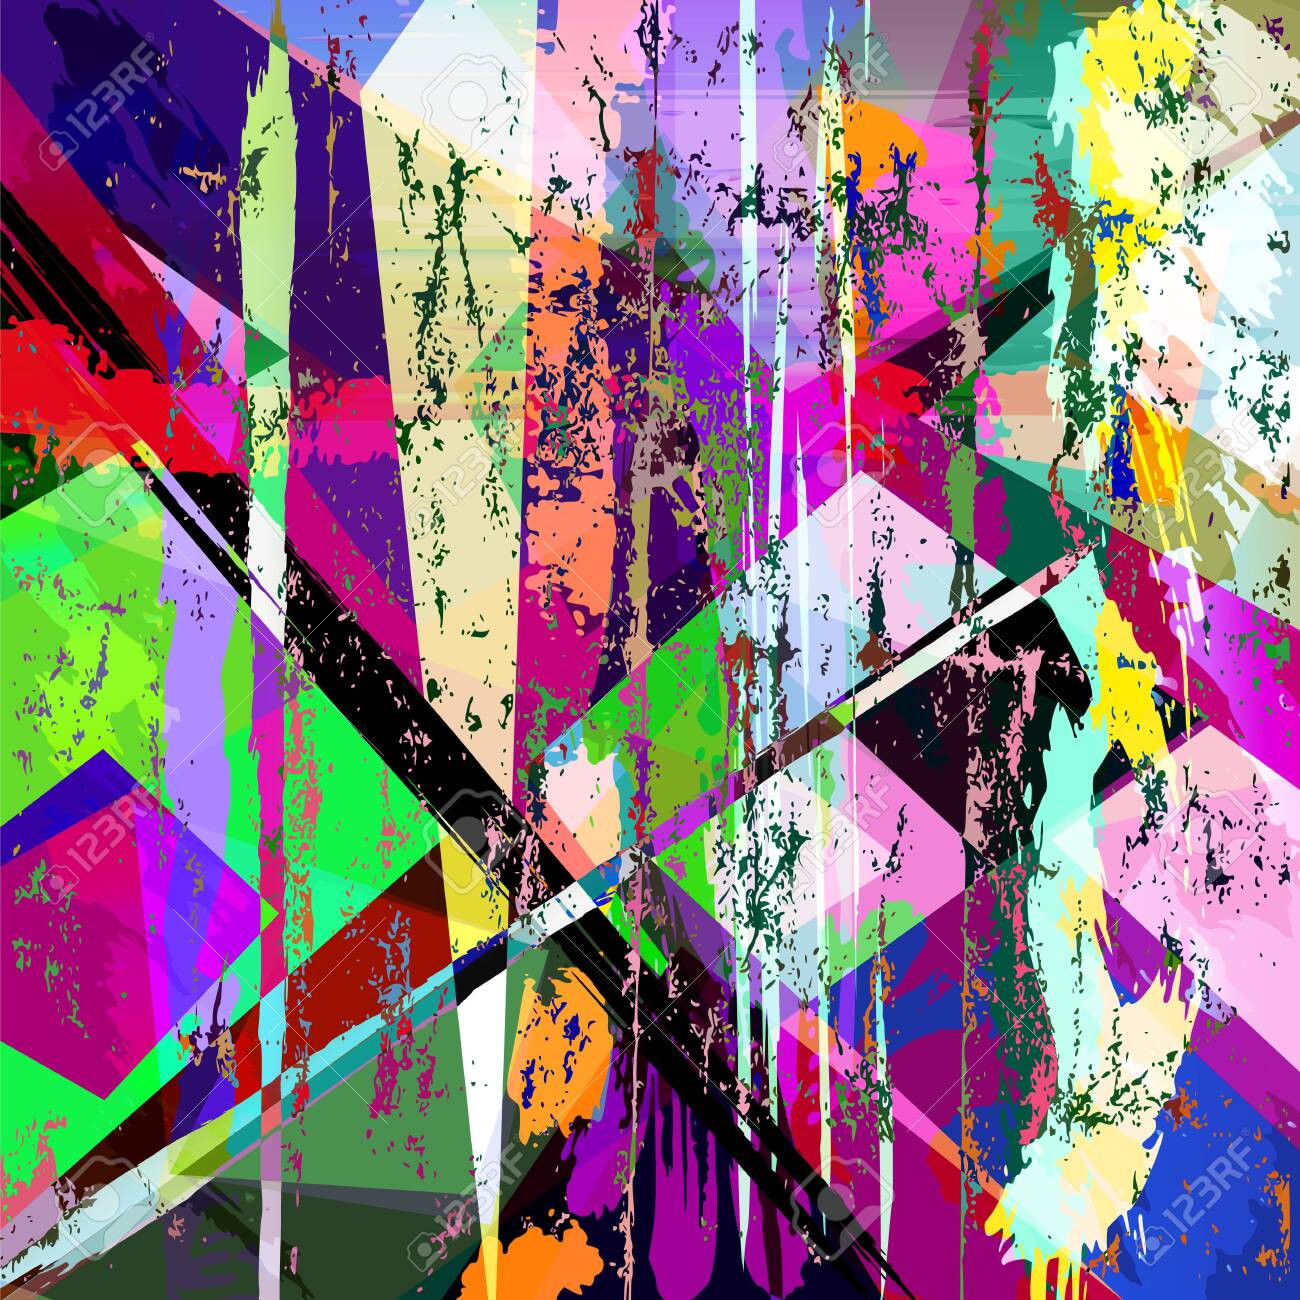 abstract geometric background, with paint strokes, splashes, triangles and squares - 149842312